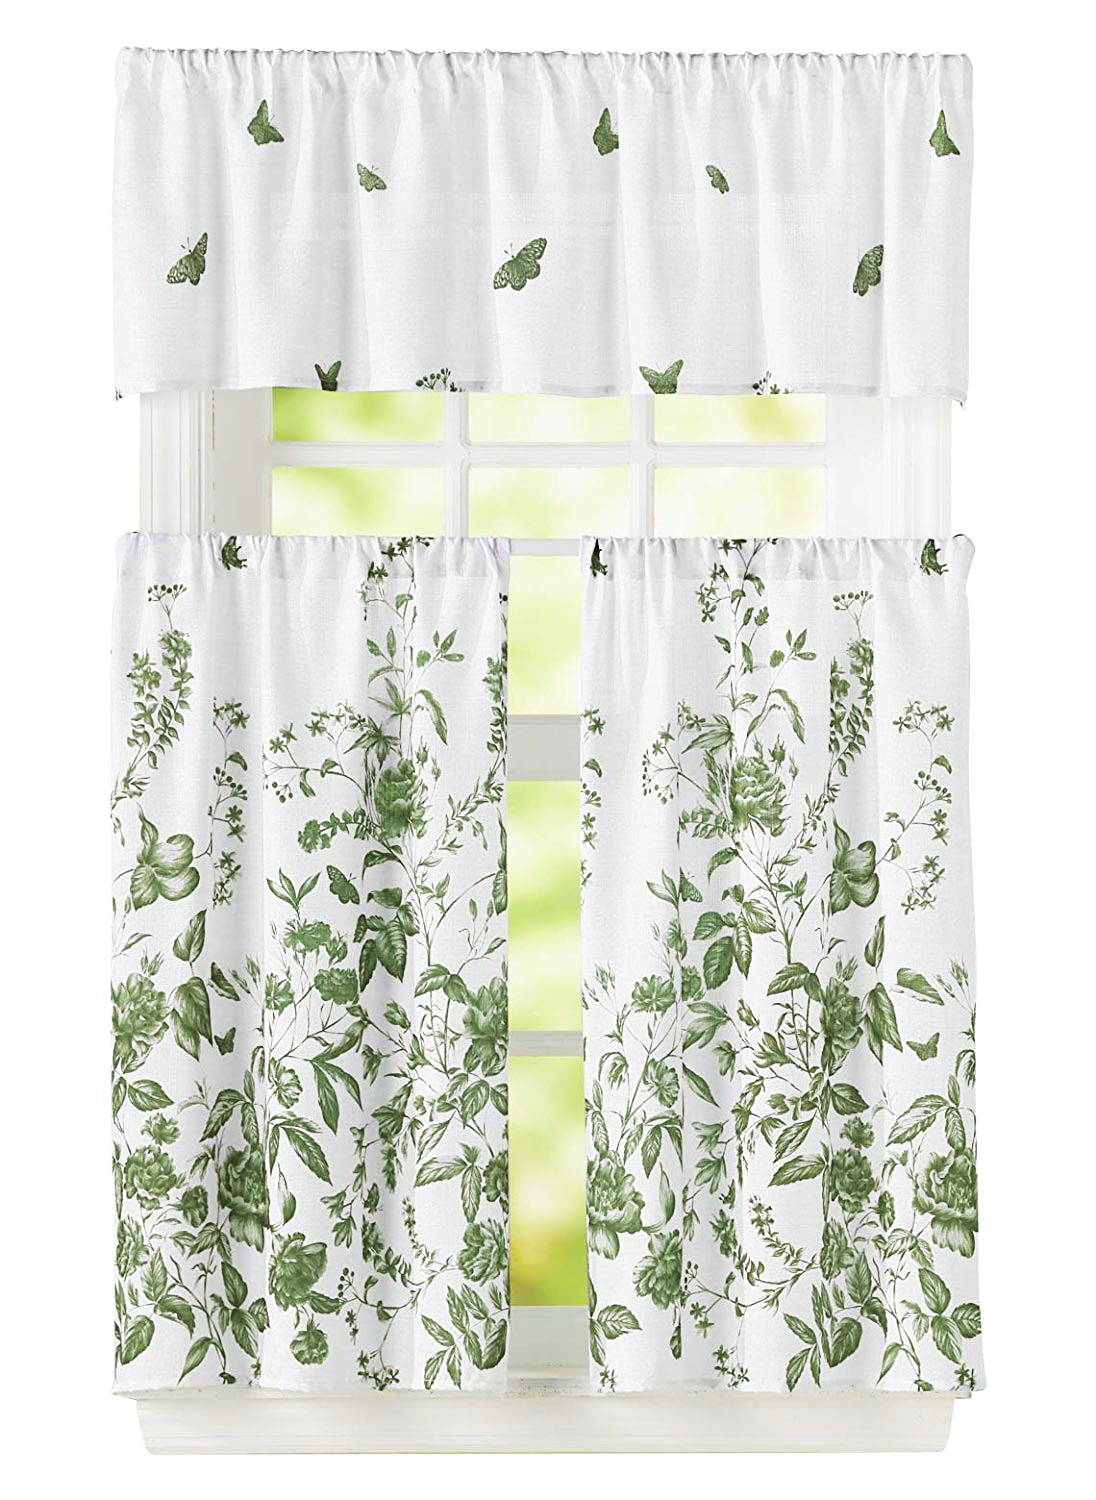 Bathroom And More 3 Piece Window Curtain Set Floral Design One Valance Two Tiers Sage Green 24 Tier Sage Green And White Walmart Com Walmart Com